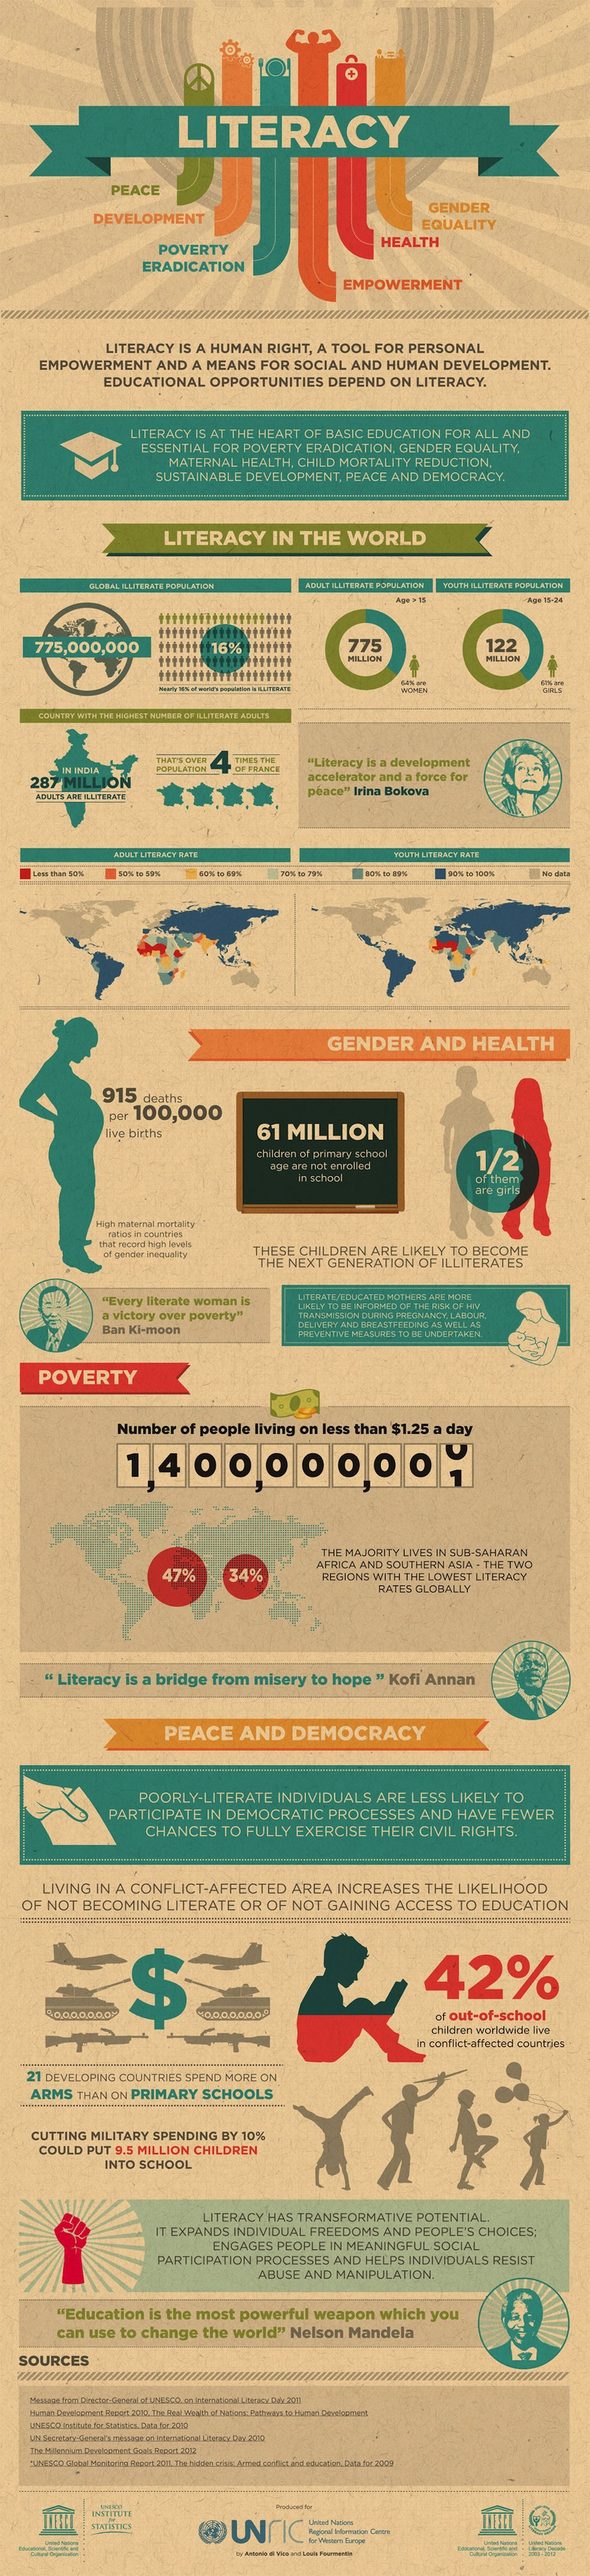 Literacy in the world - infographic